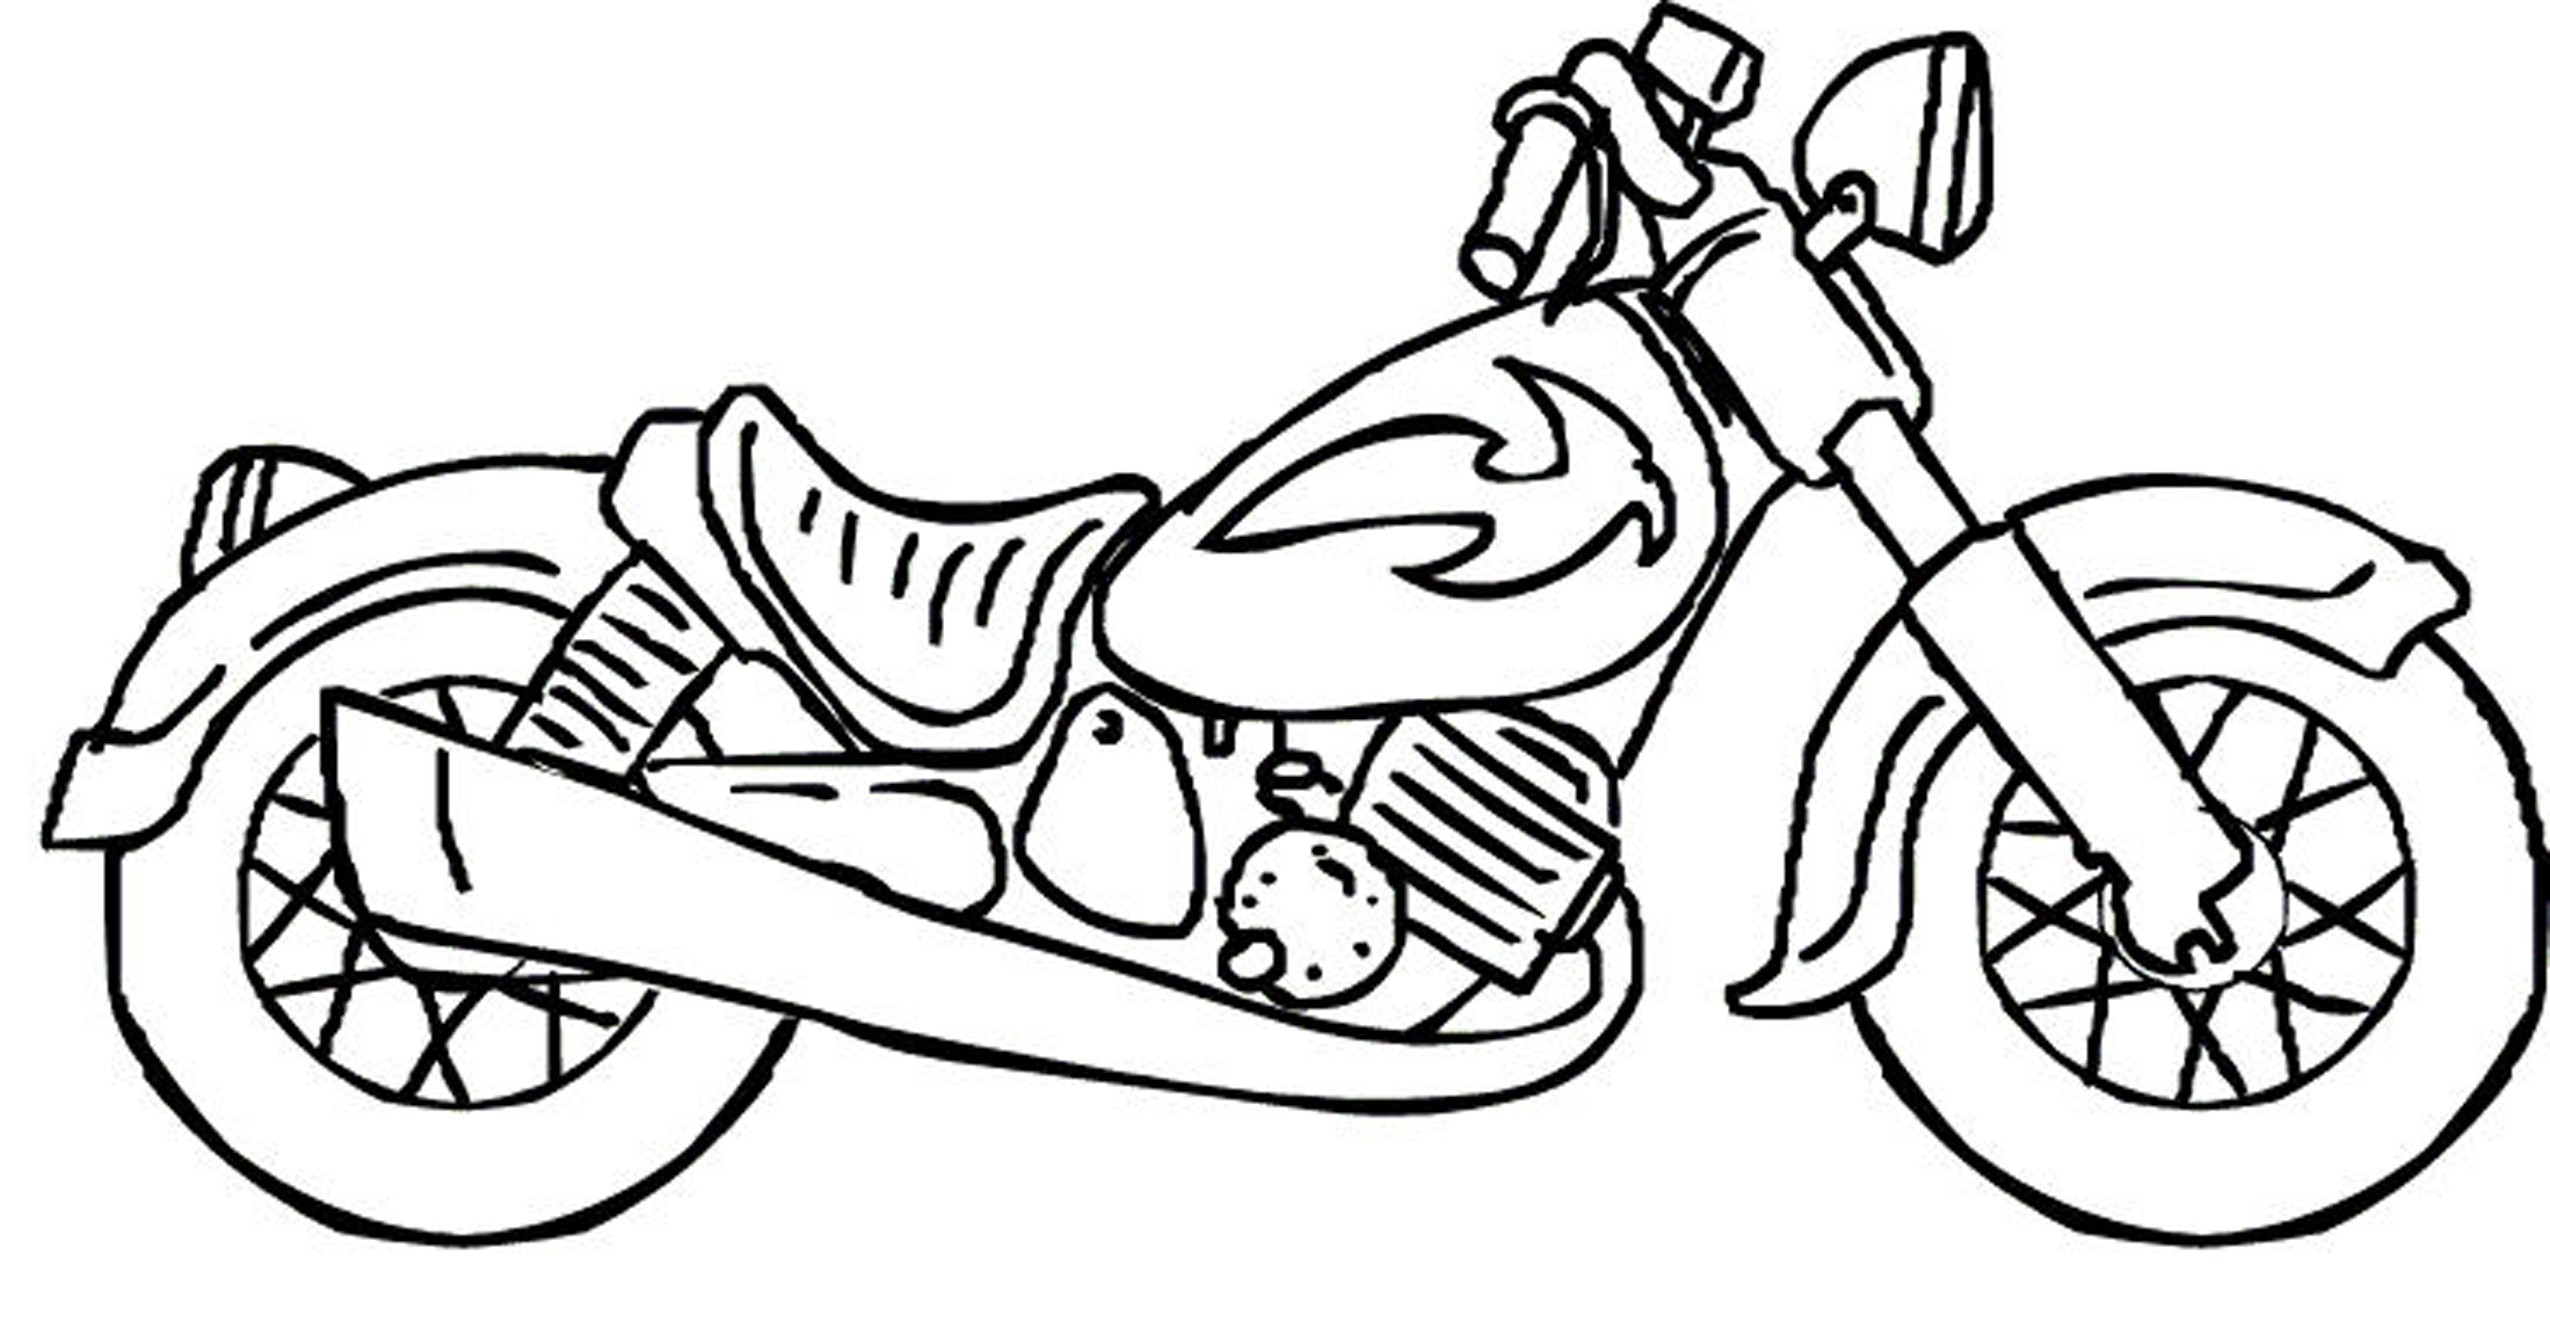 2550x1336 Mario On Motorcycle Coloring Pages For Kids Luxury Motorcycle